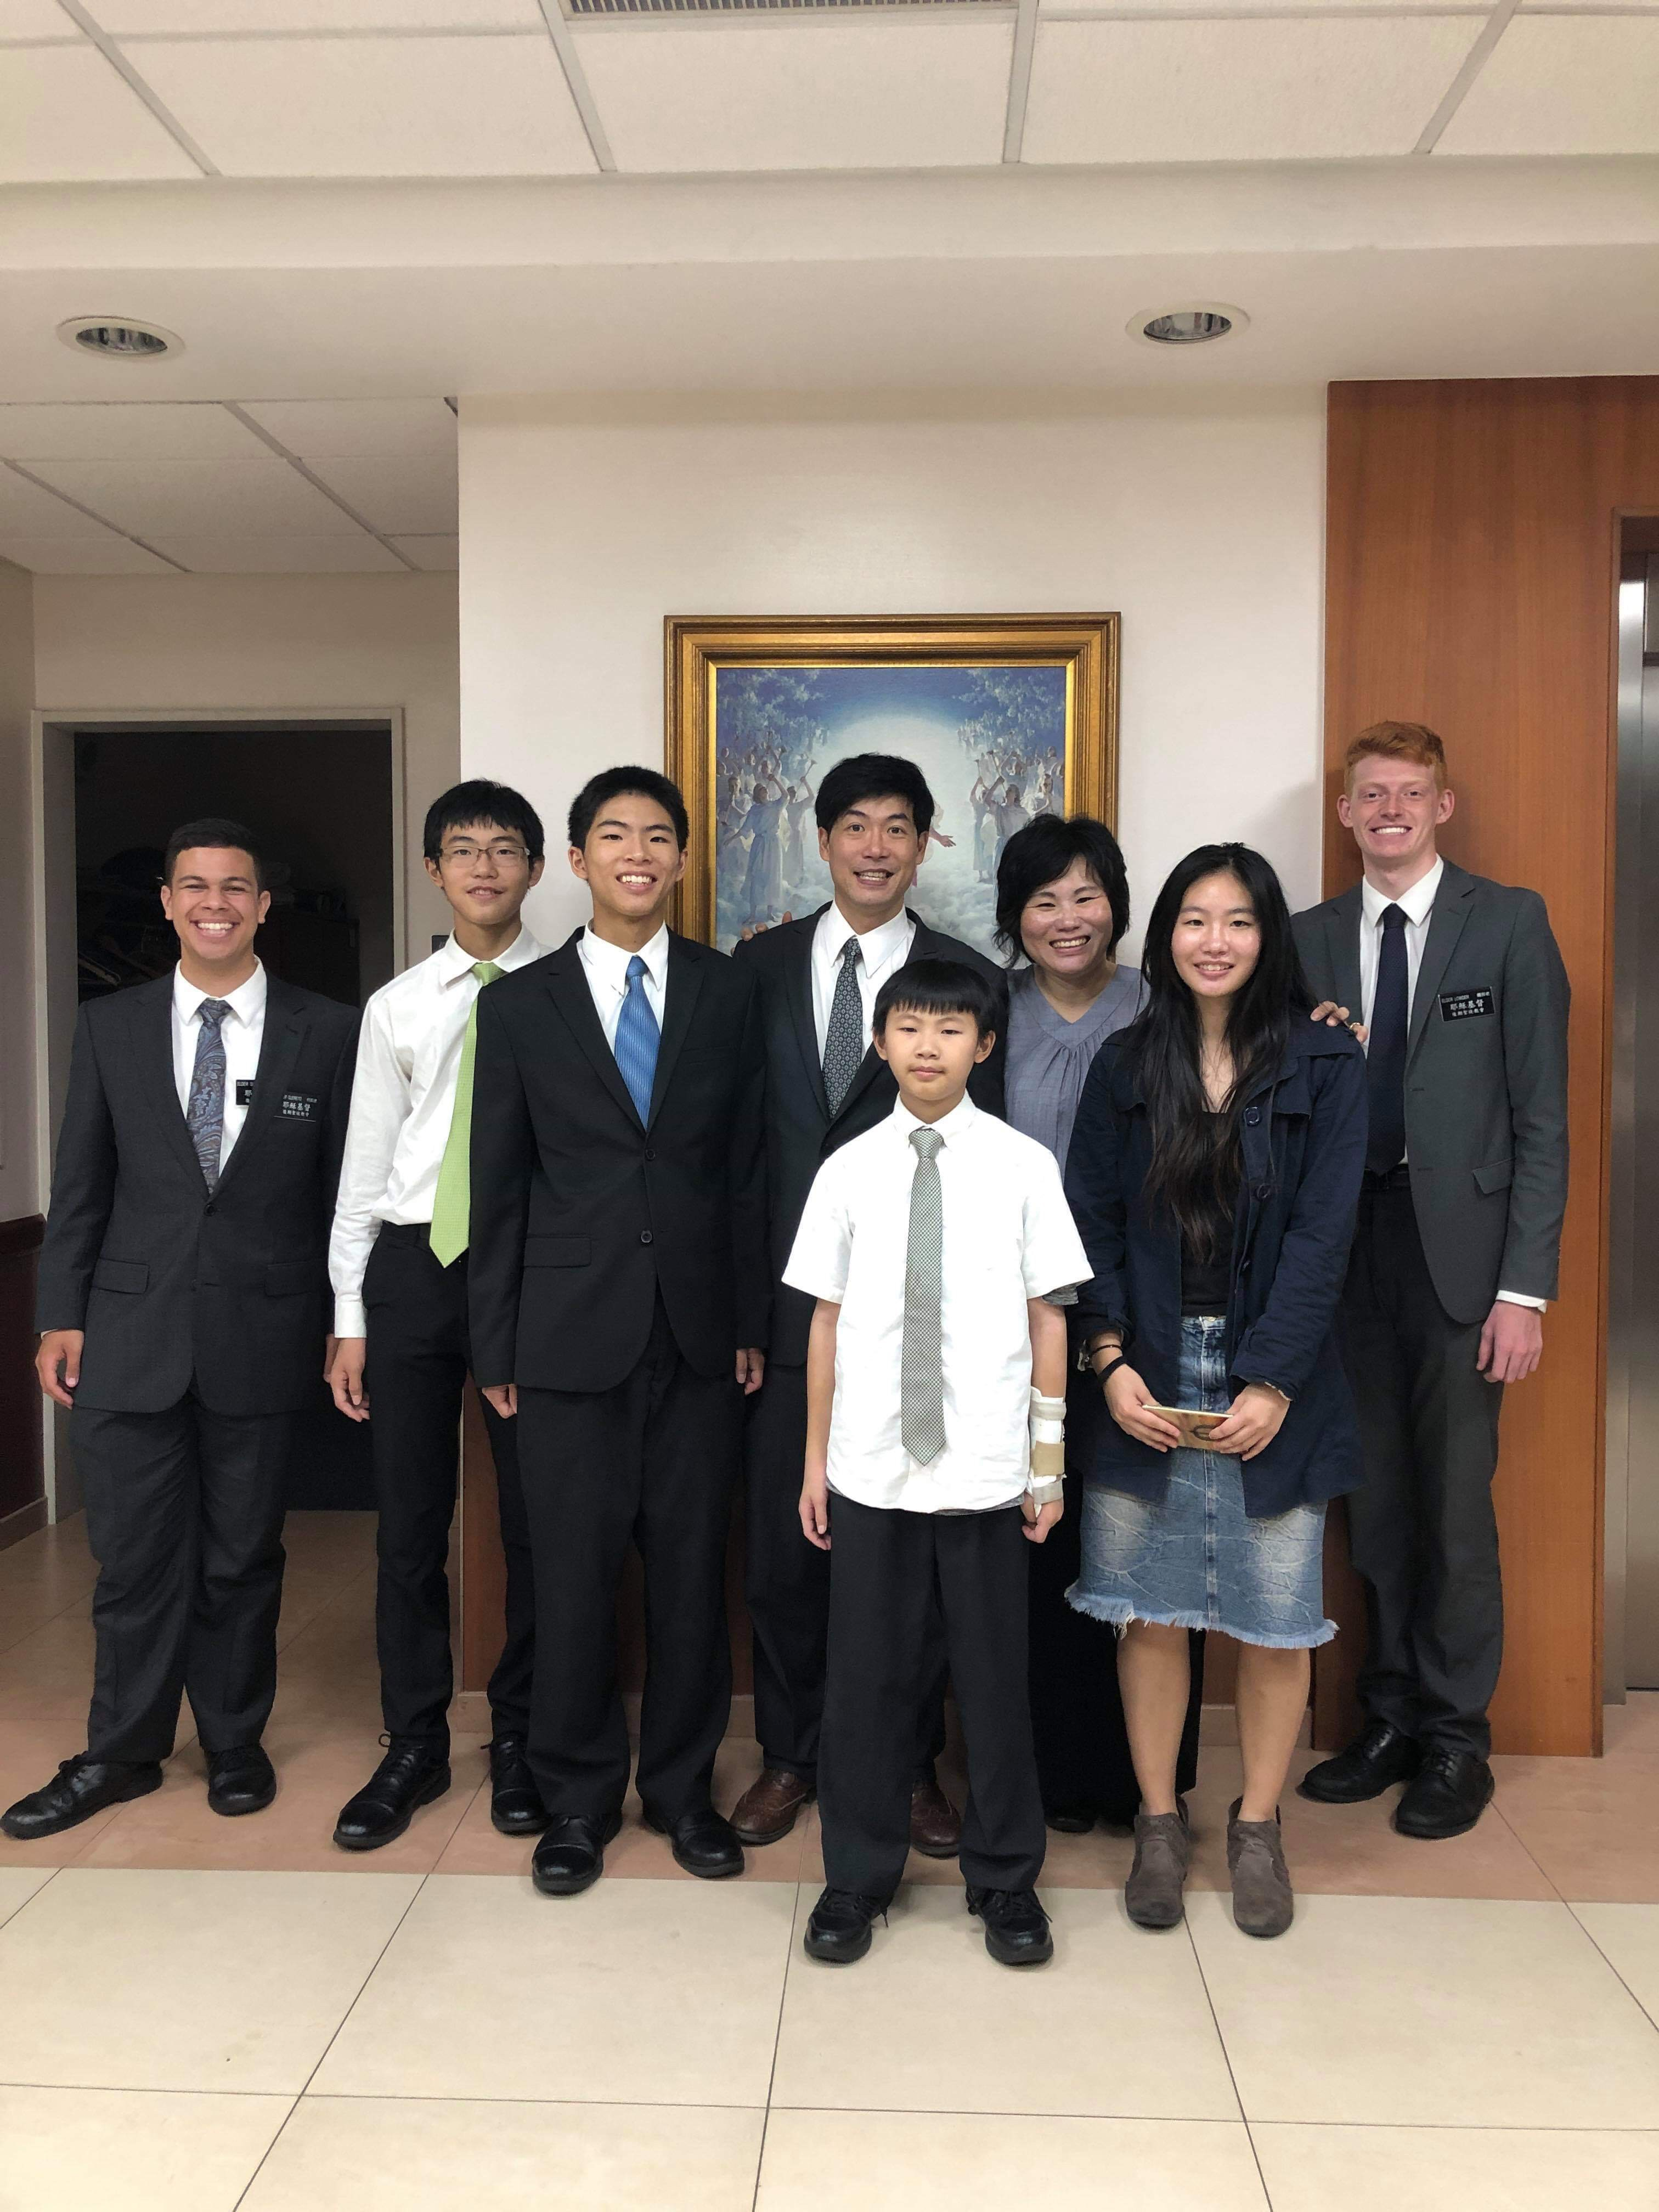 The Jacob Ong family in Taiwan.